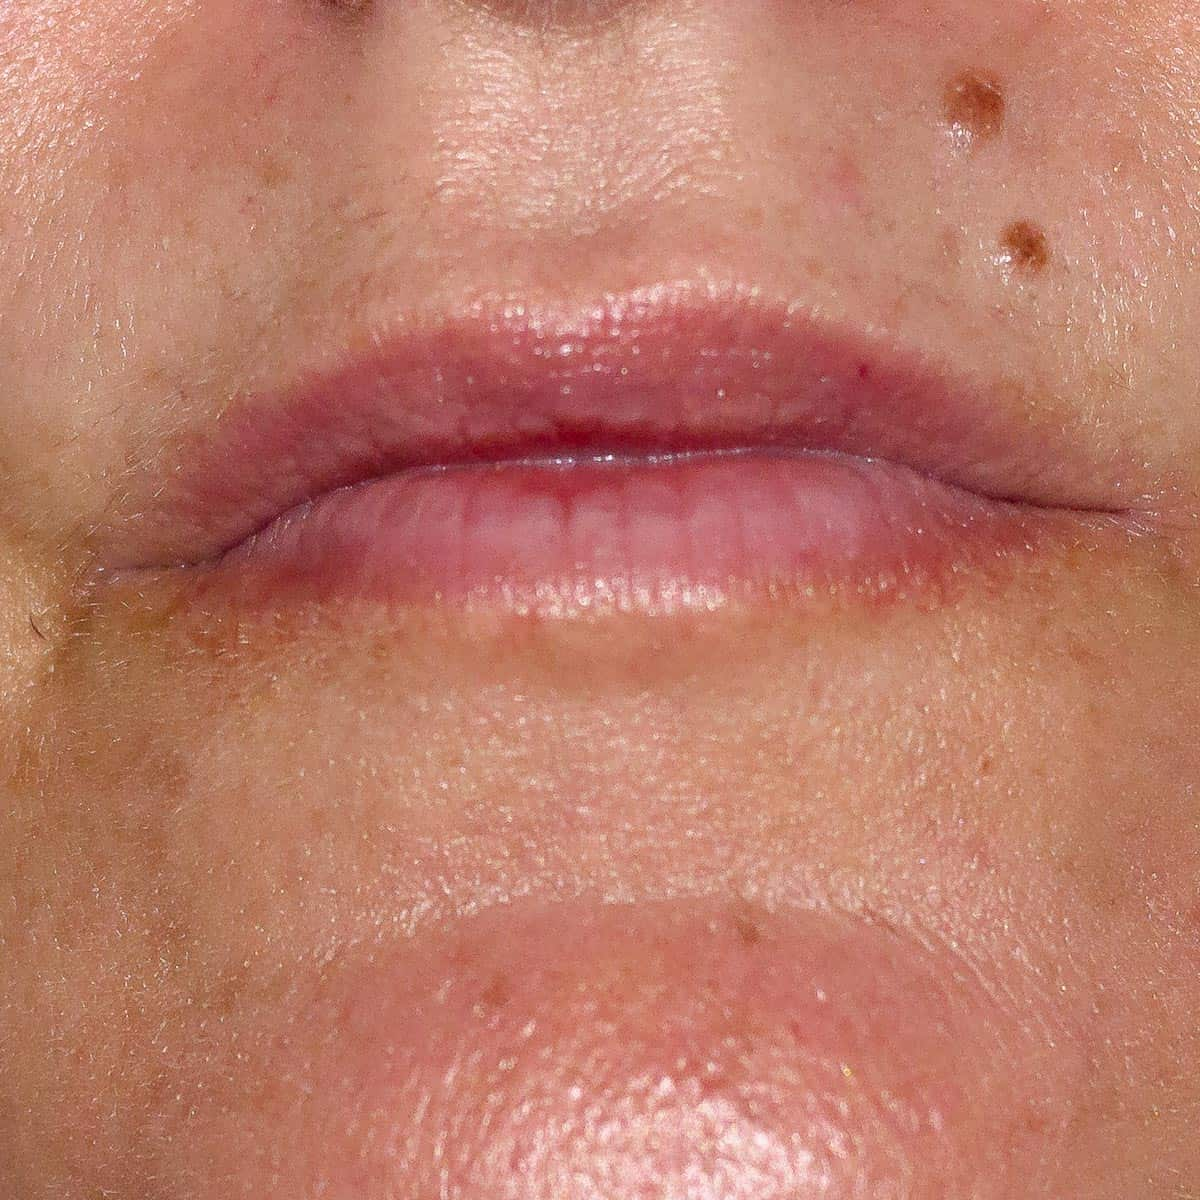 close up of lips after using an at-home lip filler